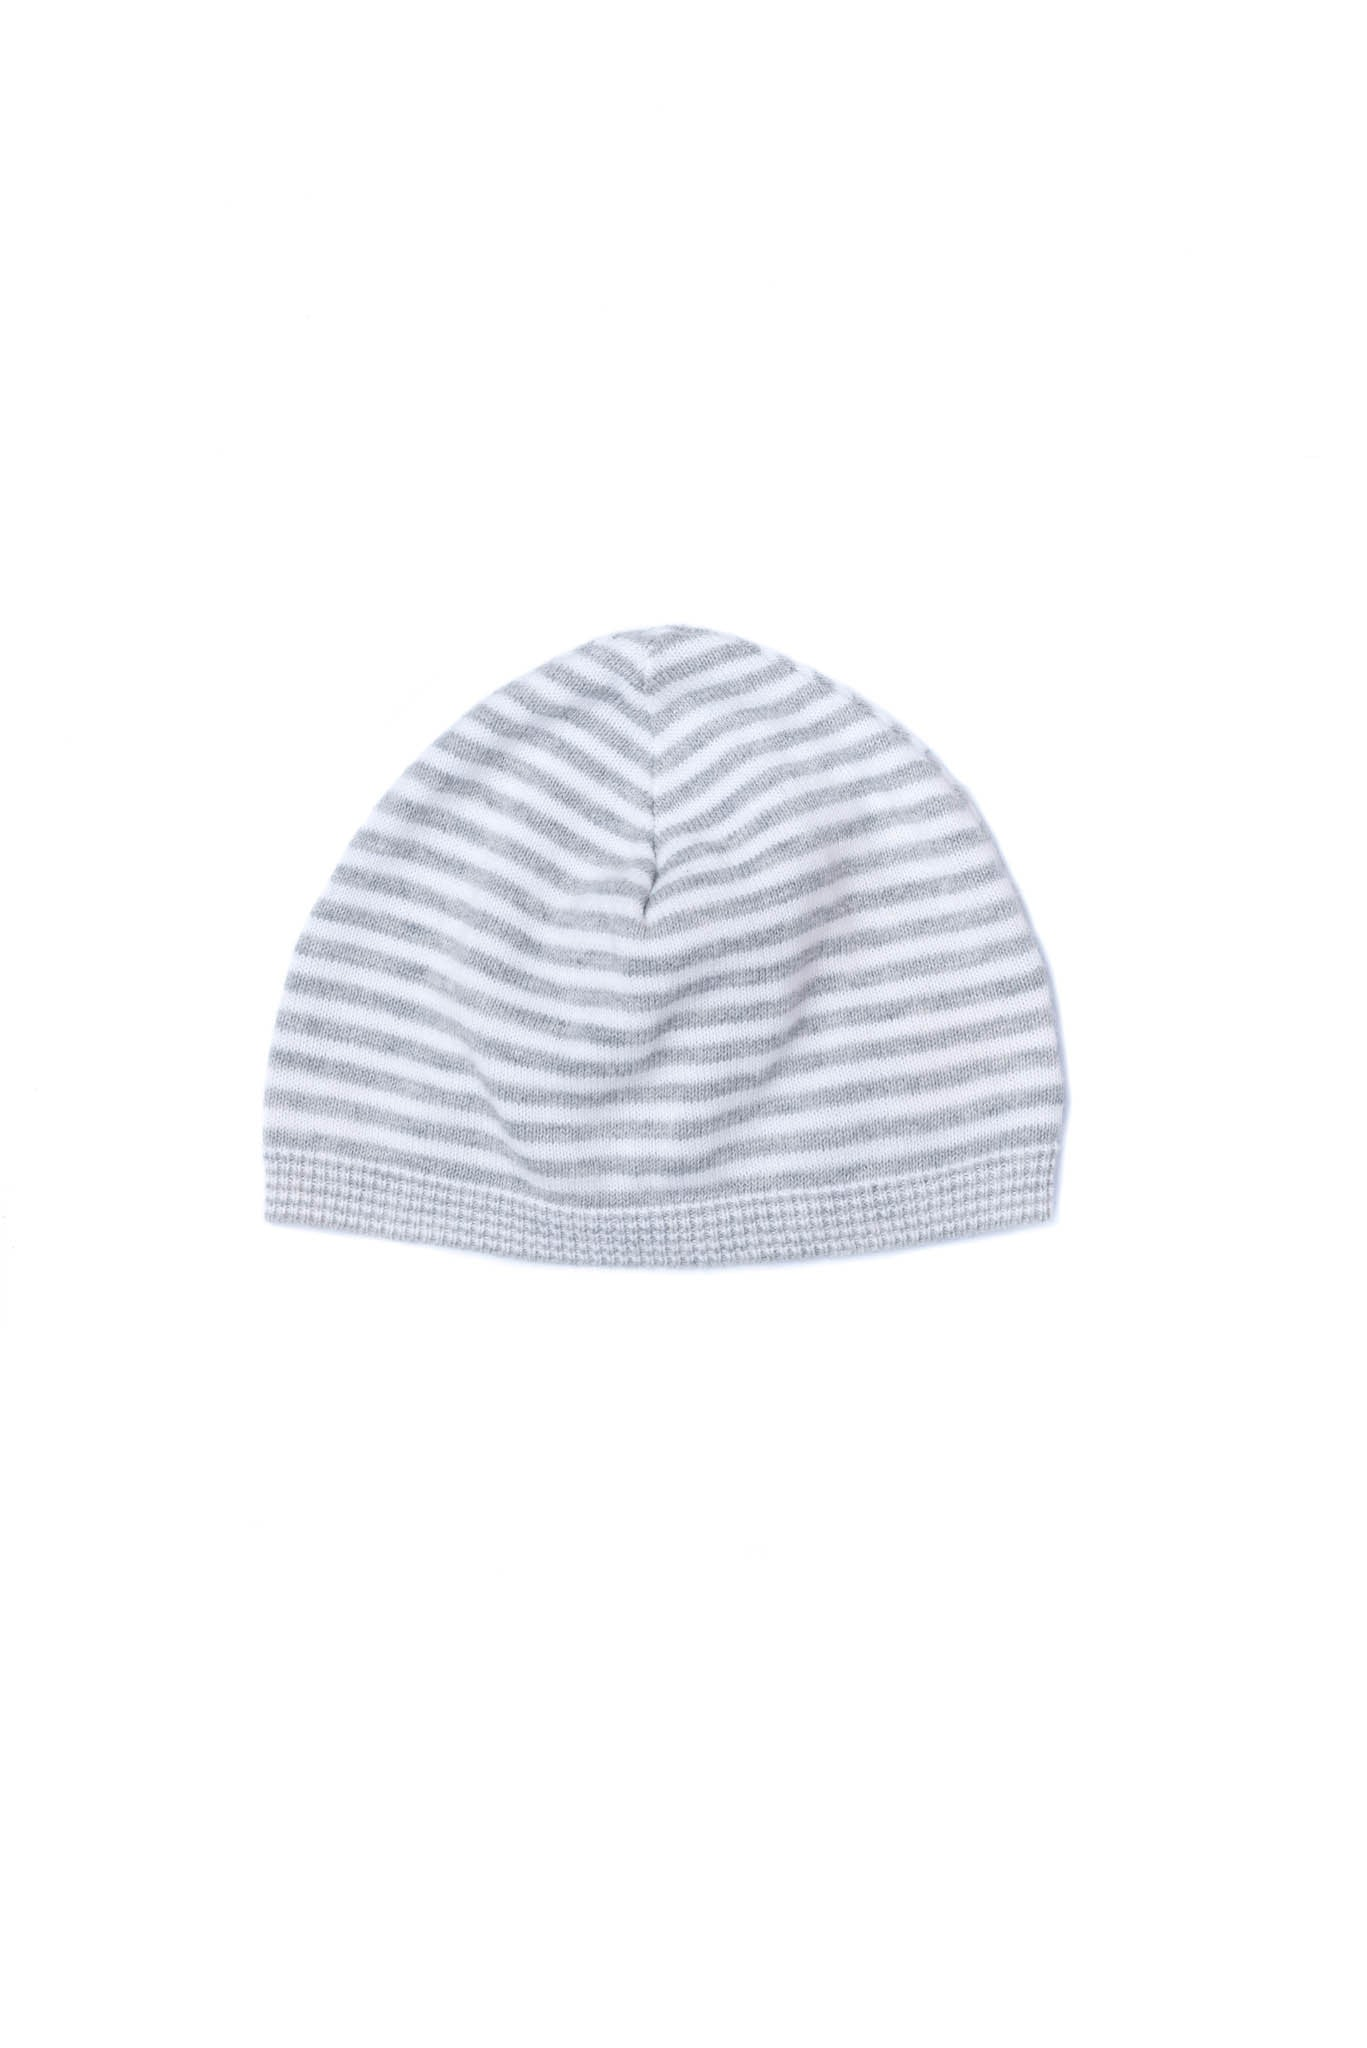 Hat 0-3M, Seed at Retykle - Online Baby & Kids Clothing Up to 90% Off